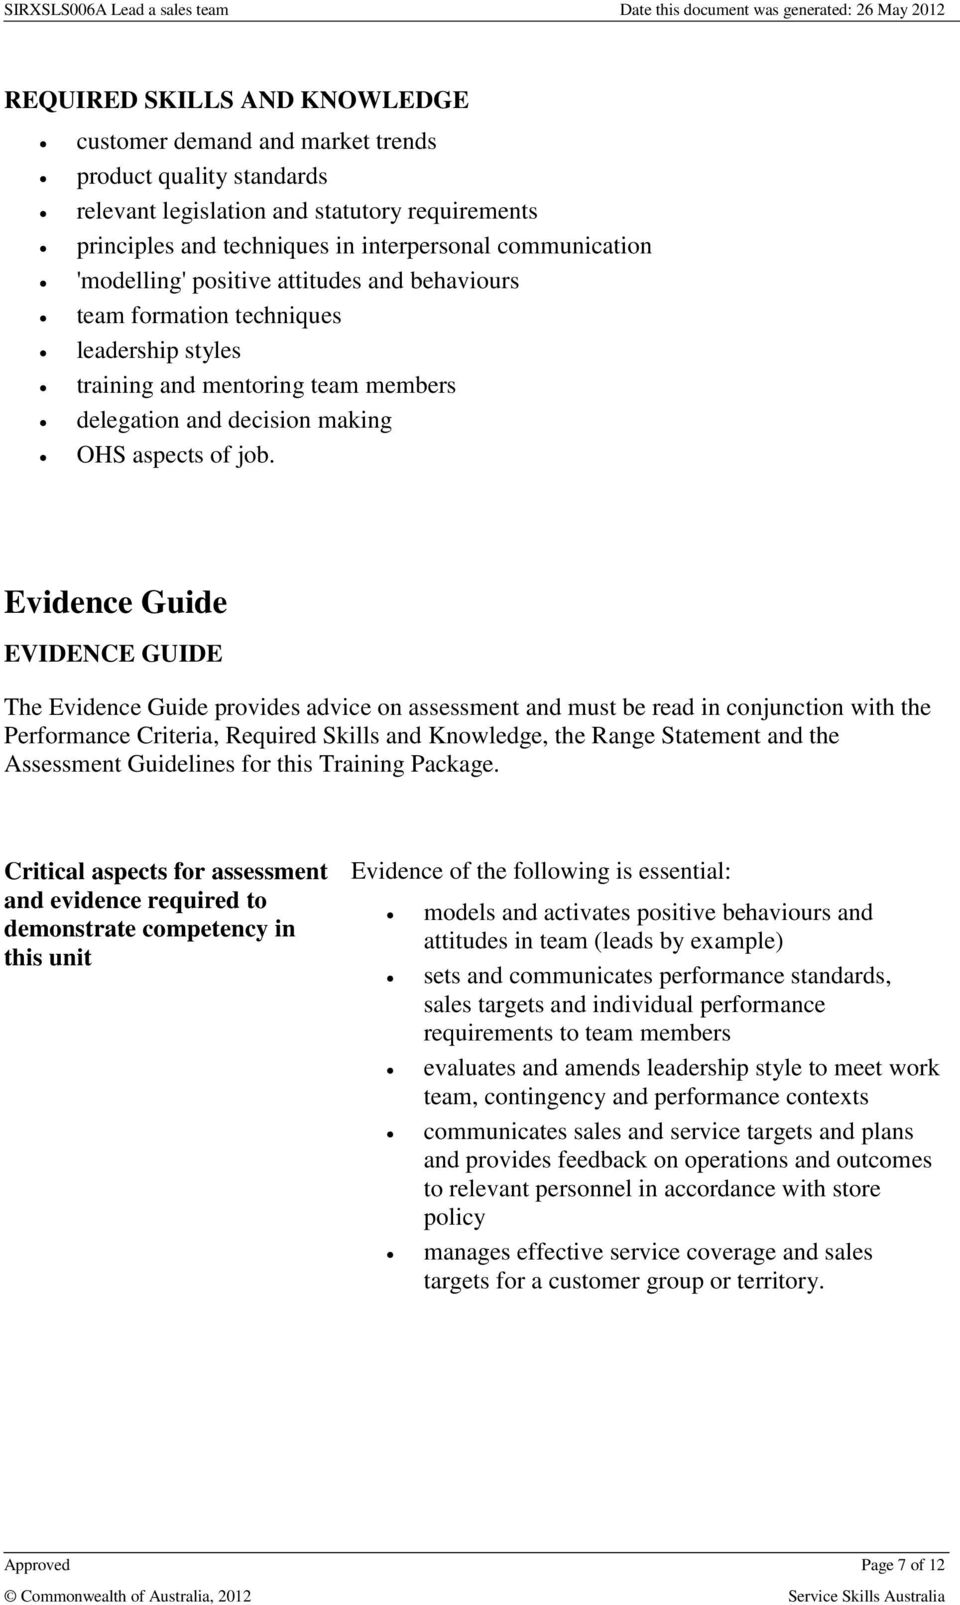 Evidence Guide EVIDENCE GUIDE The Evidence Guide provides advice on assessment and must be read in conjunction with the Performance Criteria, Required Skills and Knowledge, the Range Statement and